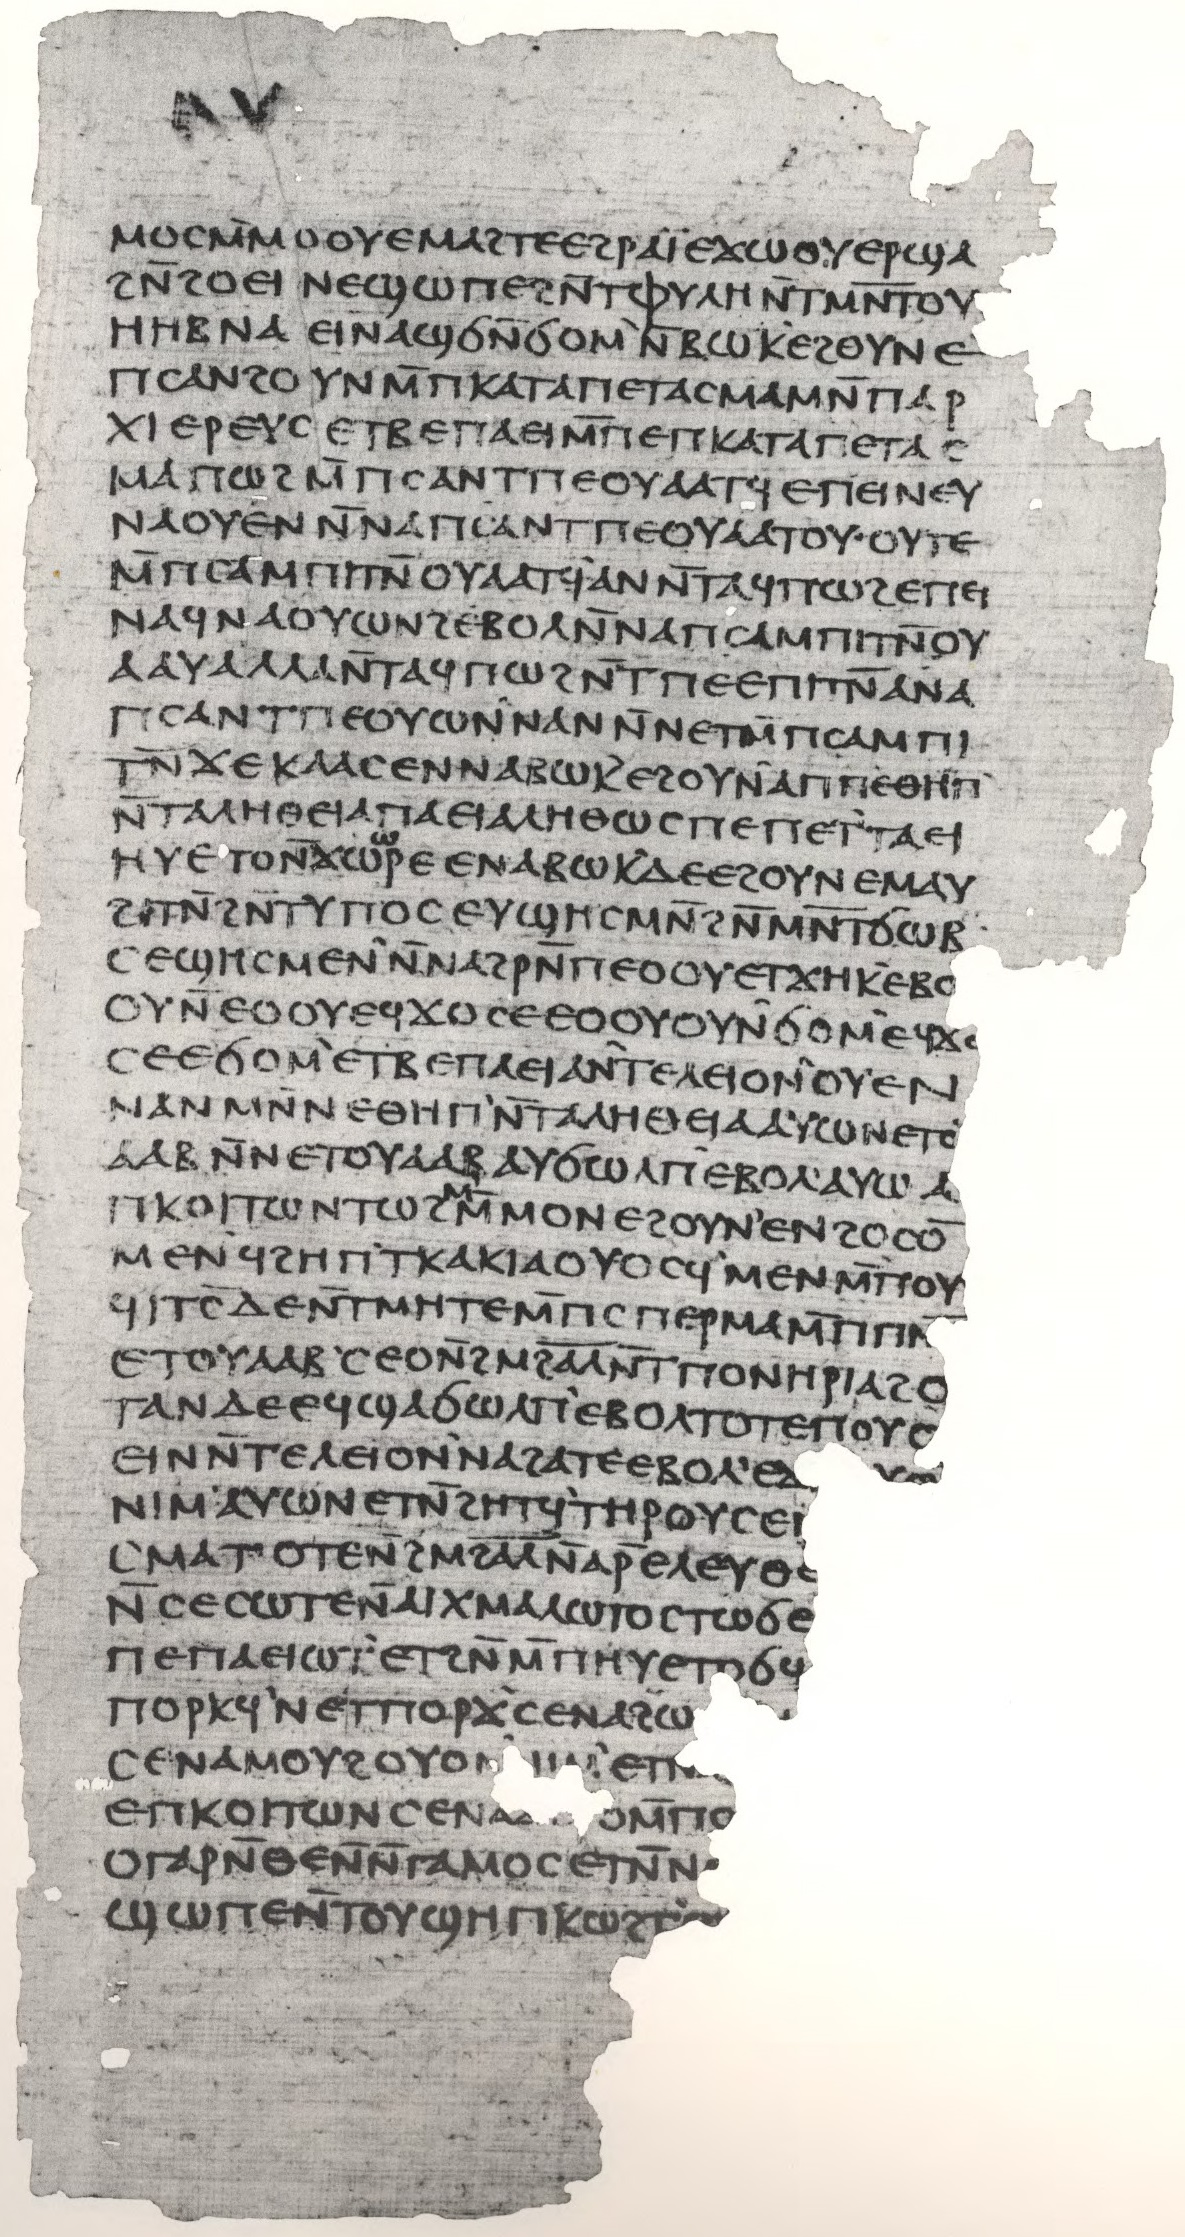 Gospel_of_Philip_facsimile_Page_85.jpg